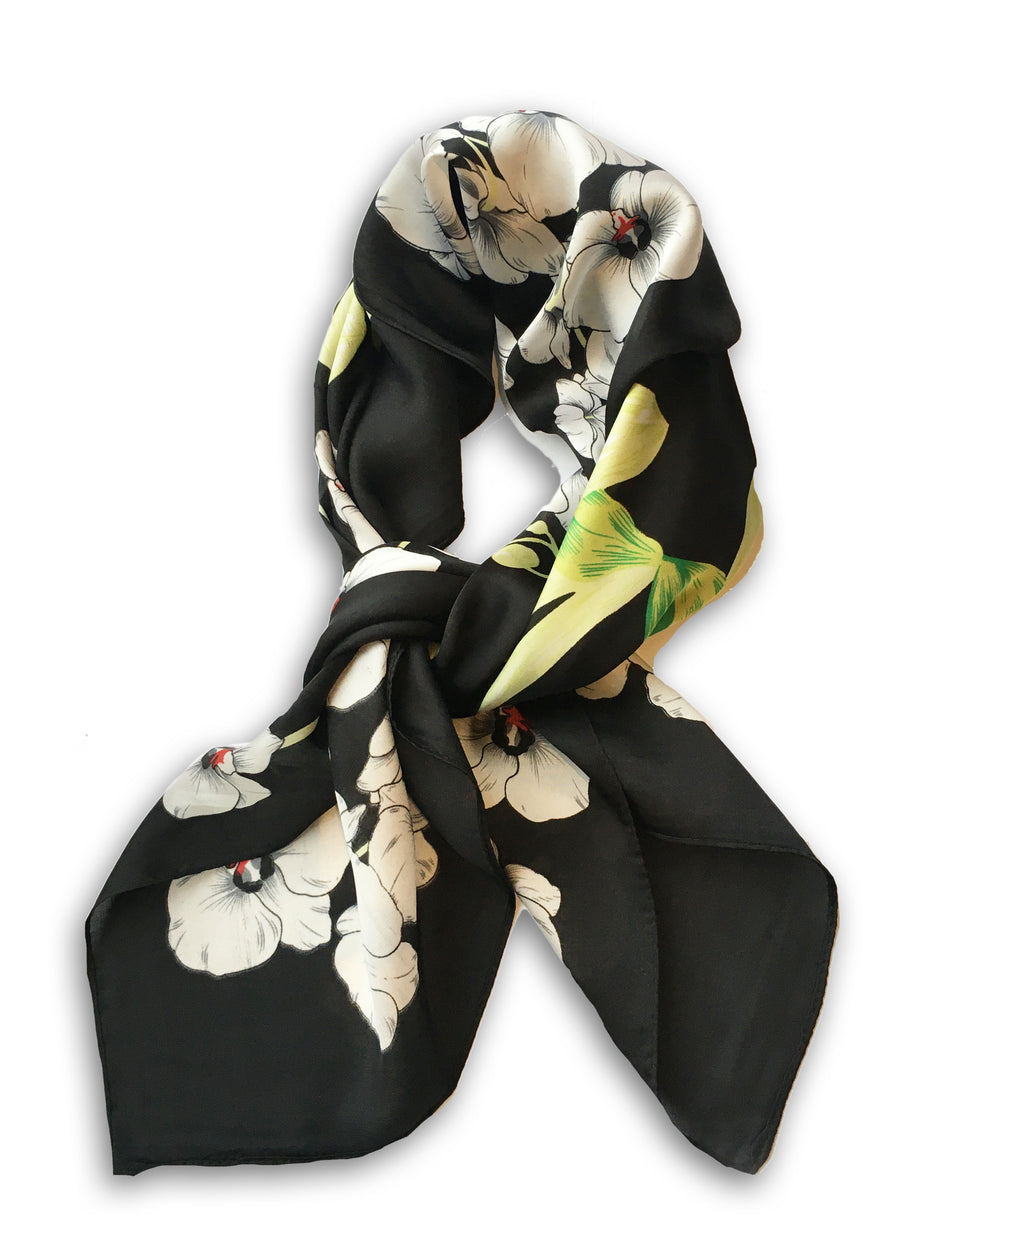 70cm x 70cm Square Scarf Black Lime Orchid Flower Scarf Thin Silky Womens Summer Spring